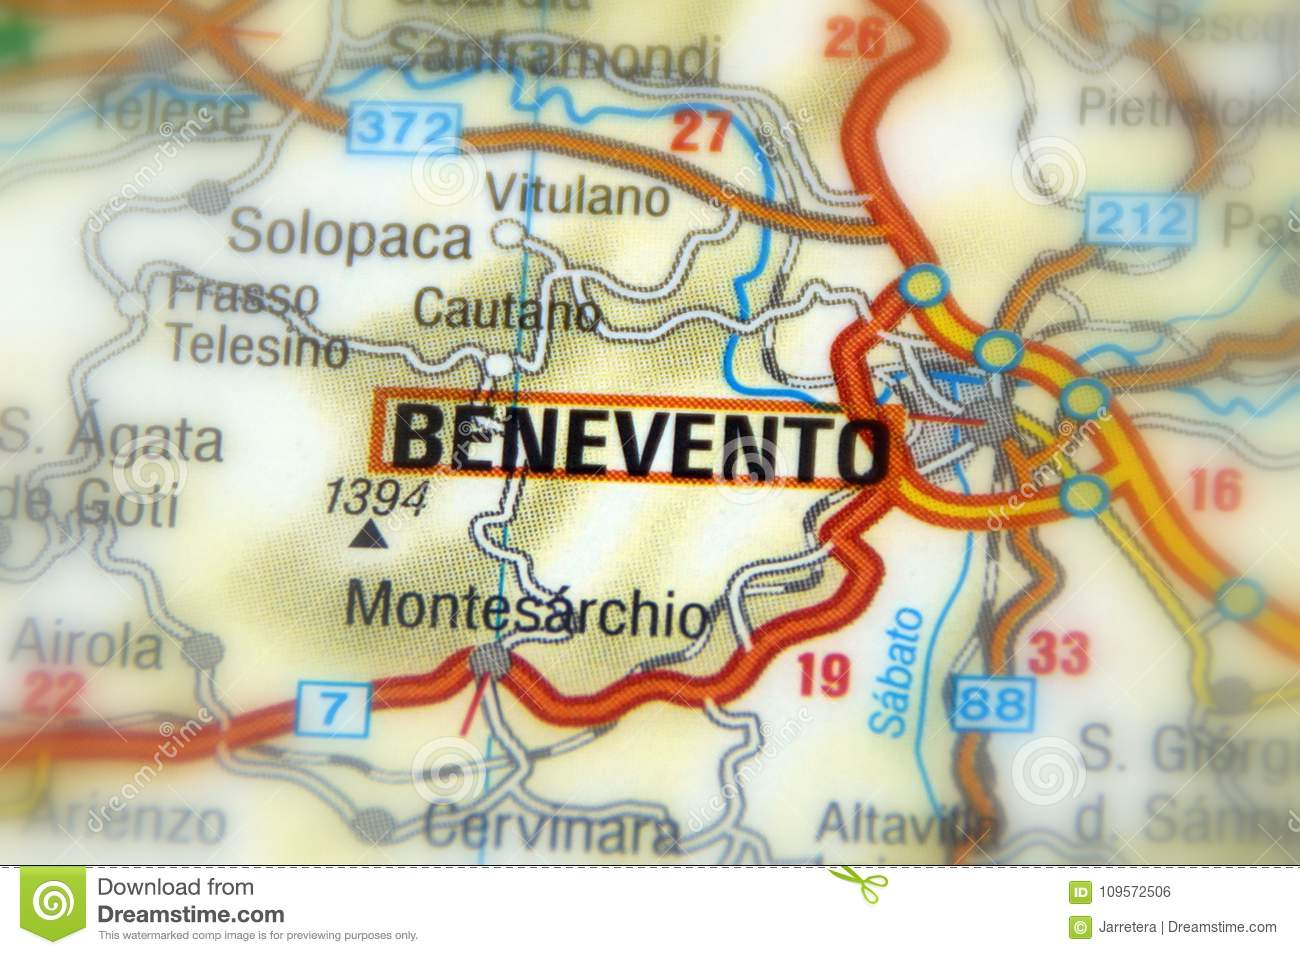 Benevento, Italy - Europe stock photo. Image of destination - 109572506